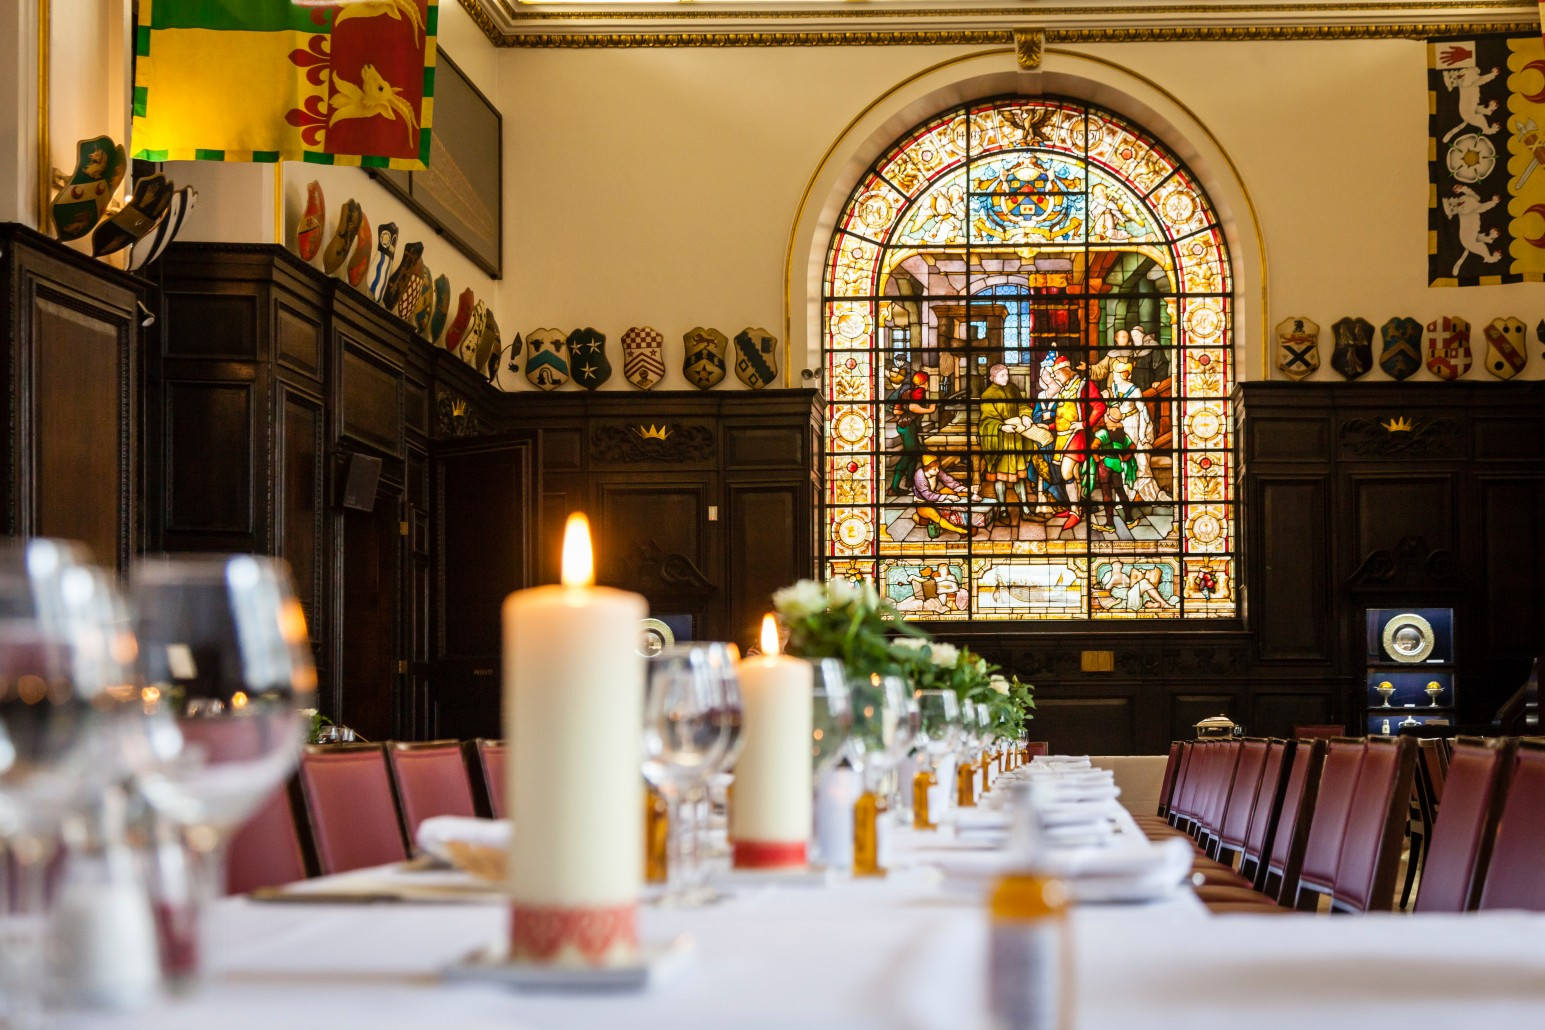 This grand Grade I listed building would make an impressive setting for a traditional Christmas lunch or dinner.